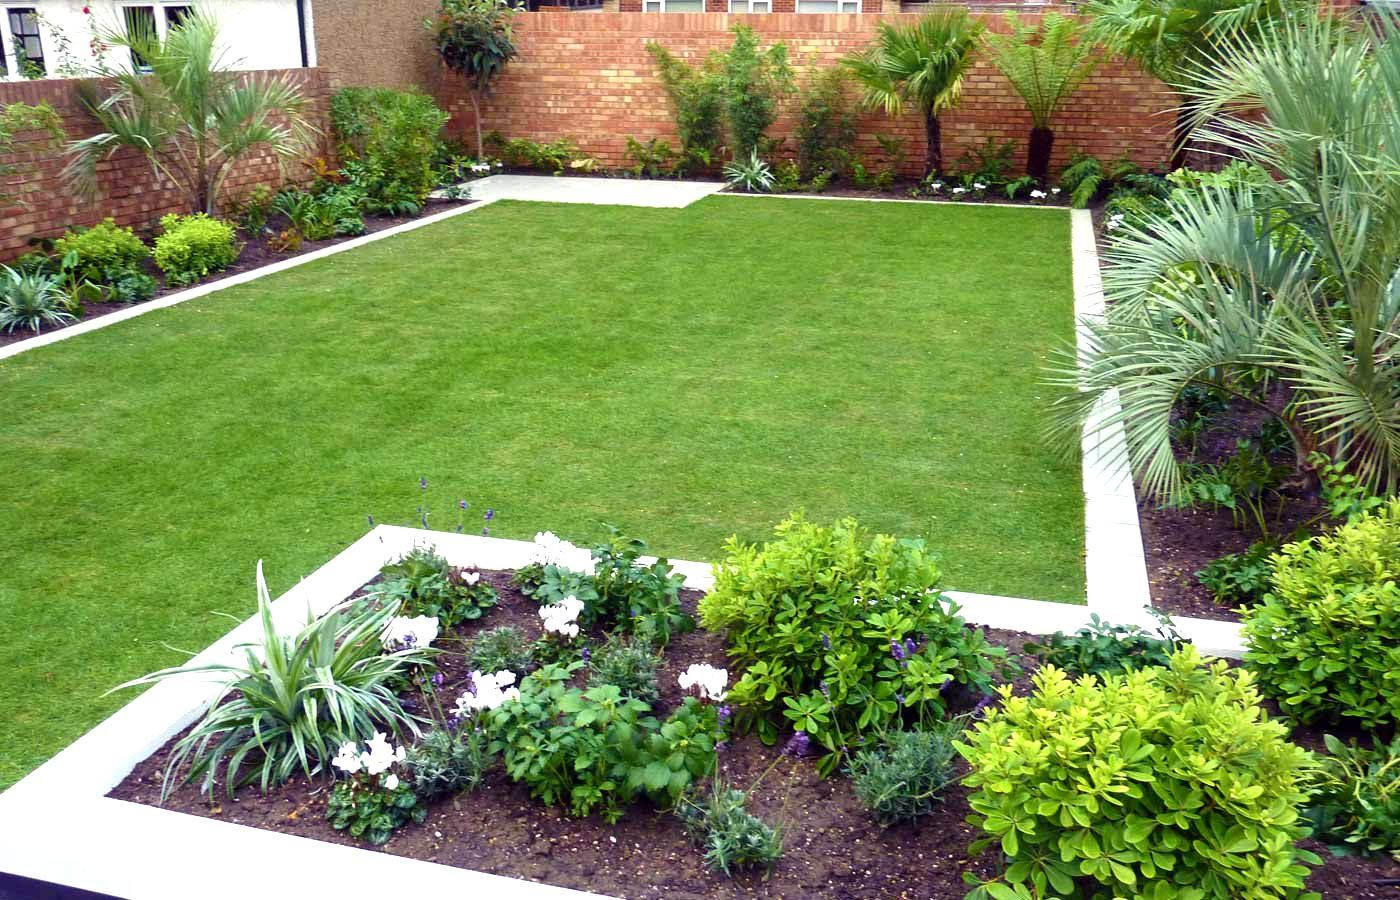 Simple garden designs no fret small garden design for Simple front garden designs